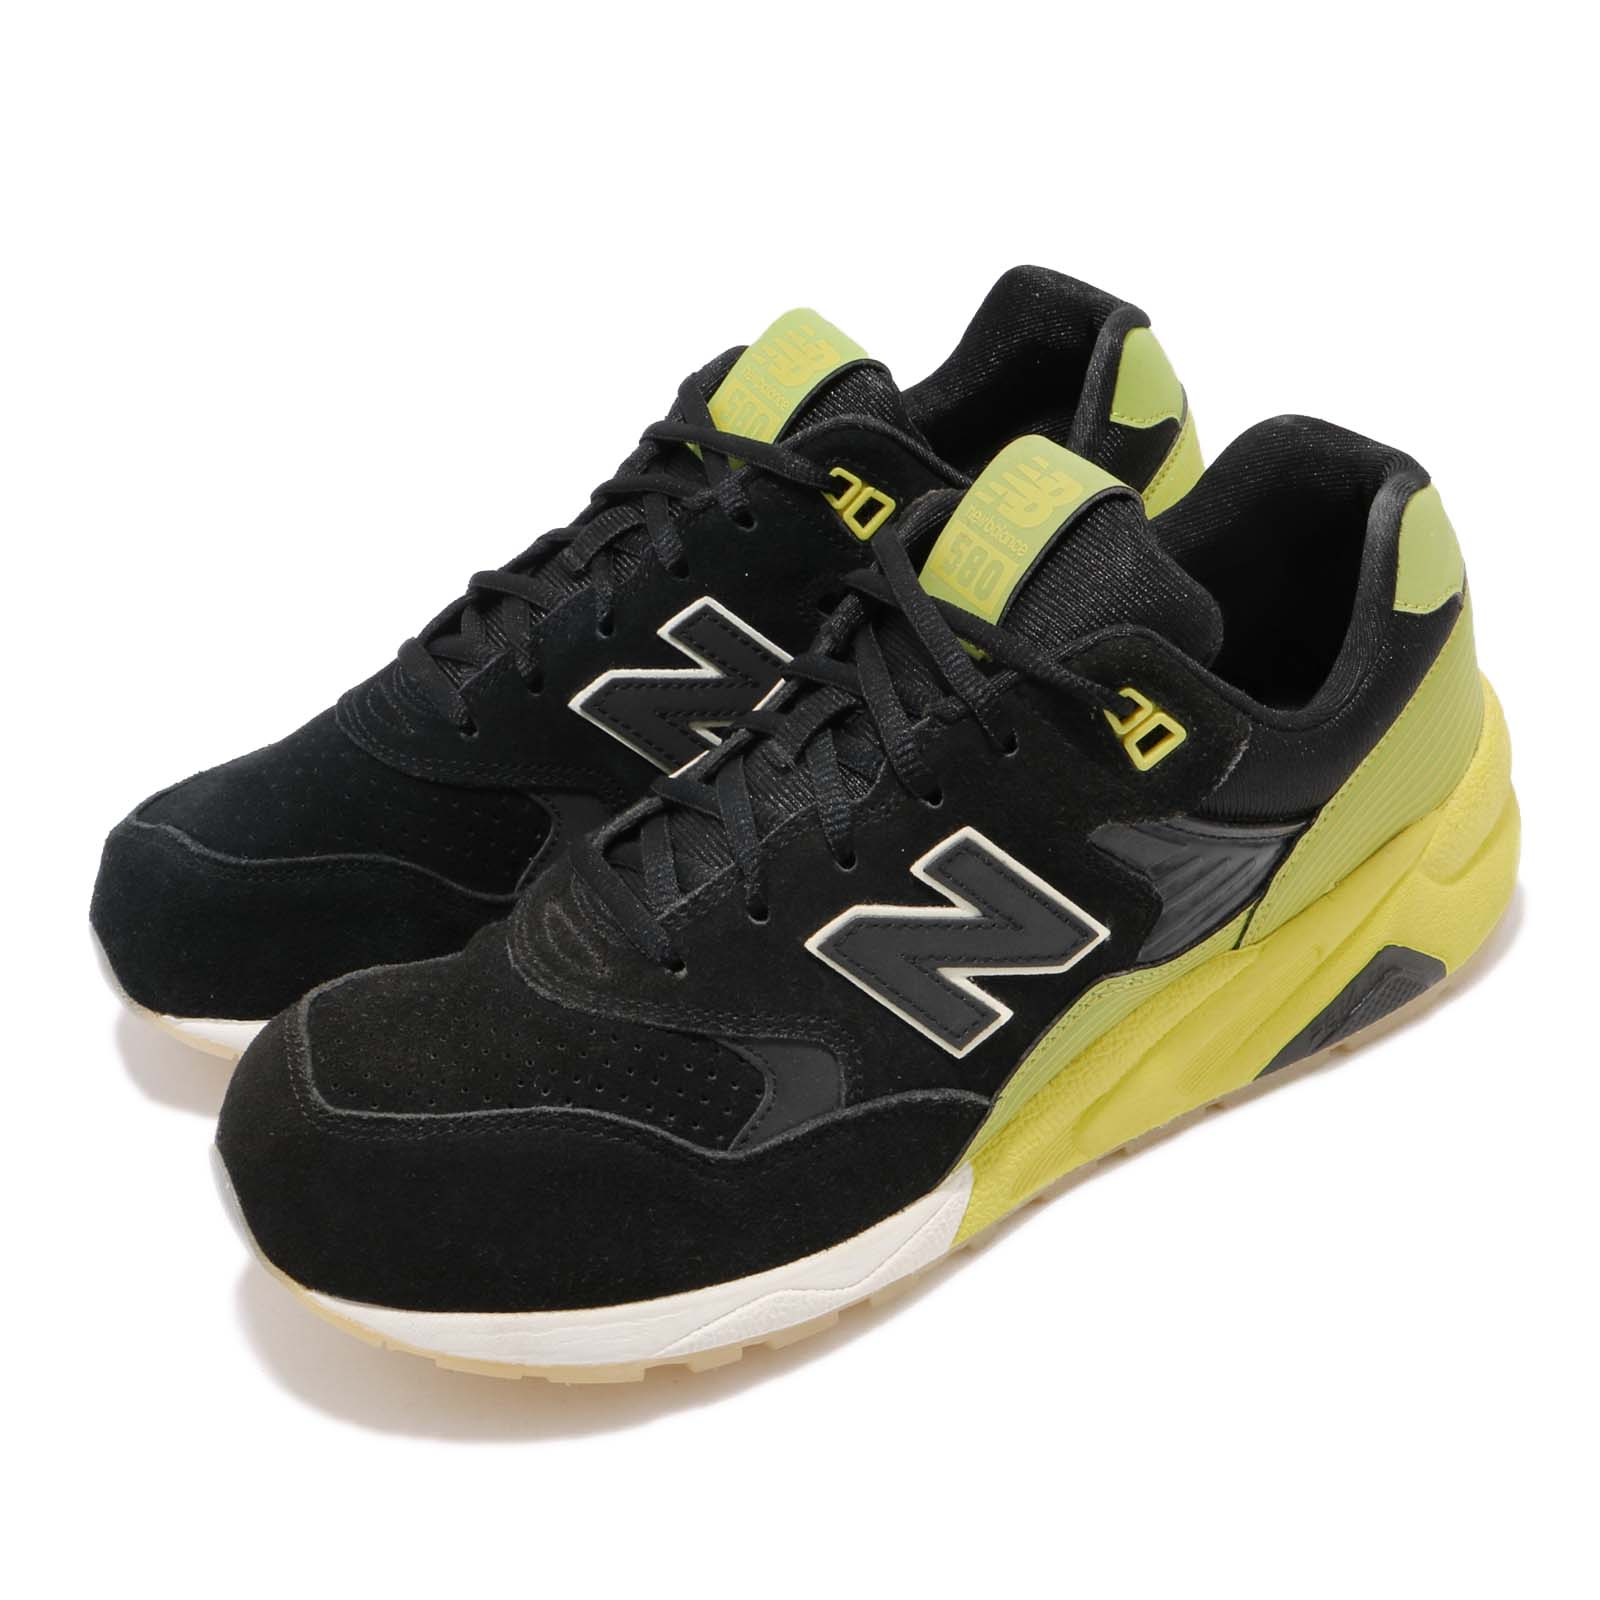 New Balance MRT580UG D Black Yellow Suede Mens Running Shoes Sneakers MRT580UGD